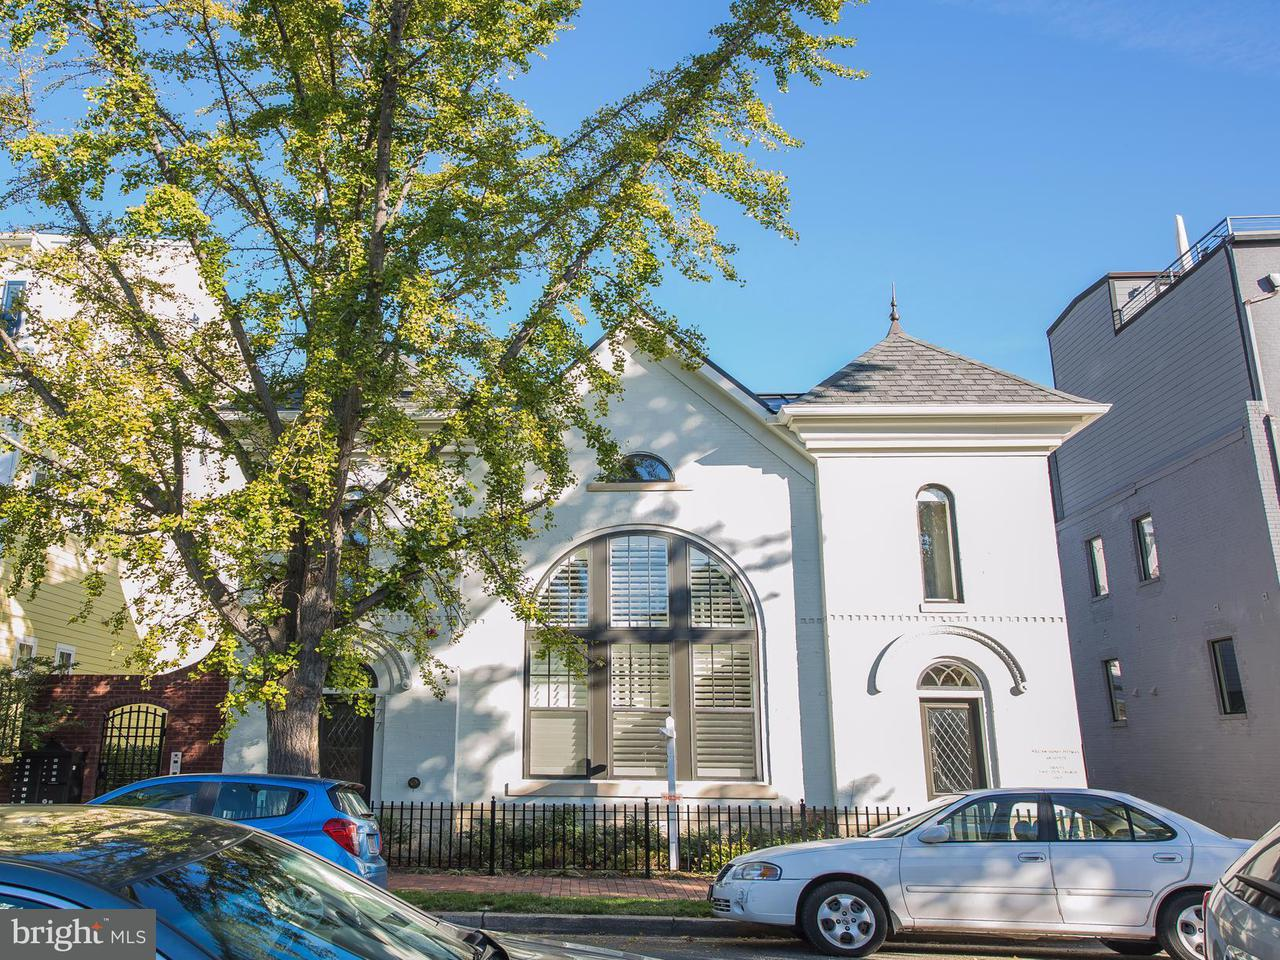 Additional photo for property listing at 777 Morton St Nw ##1a 777 Morton St Nw ##1a Washington, District Of Columbia 20010 United States